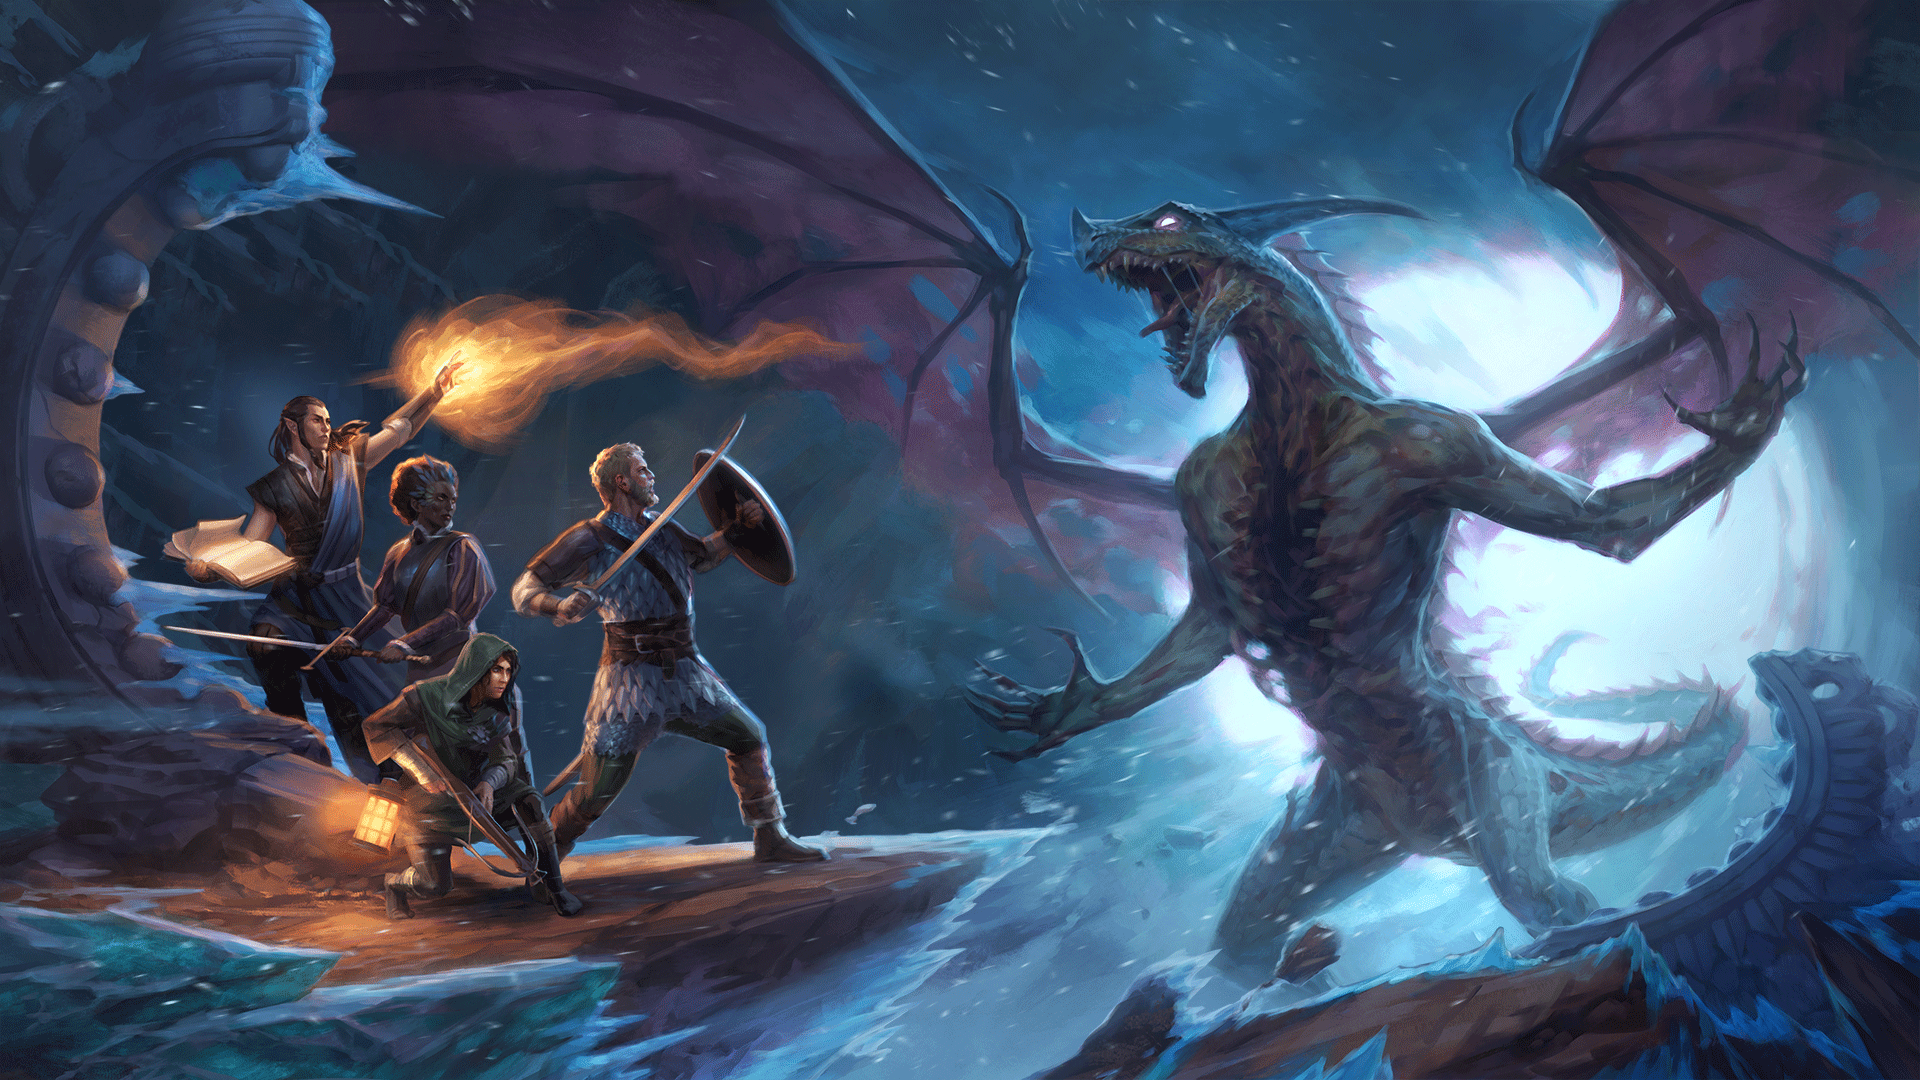 Pillars of Eternity II: Deadfire Beast of Winter